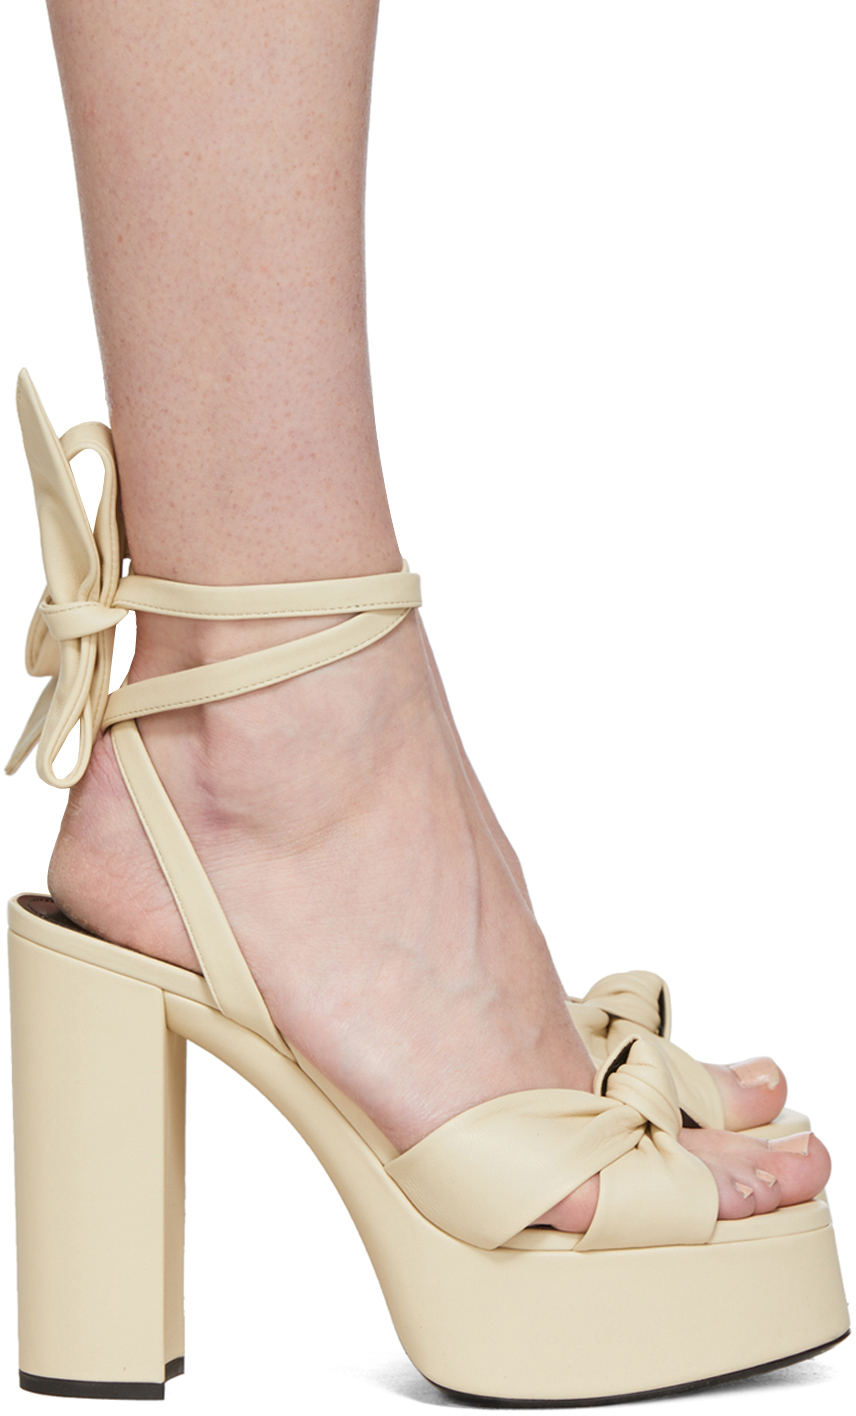 Off-White Bianca 85 Heeled Sandals by